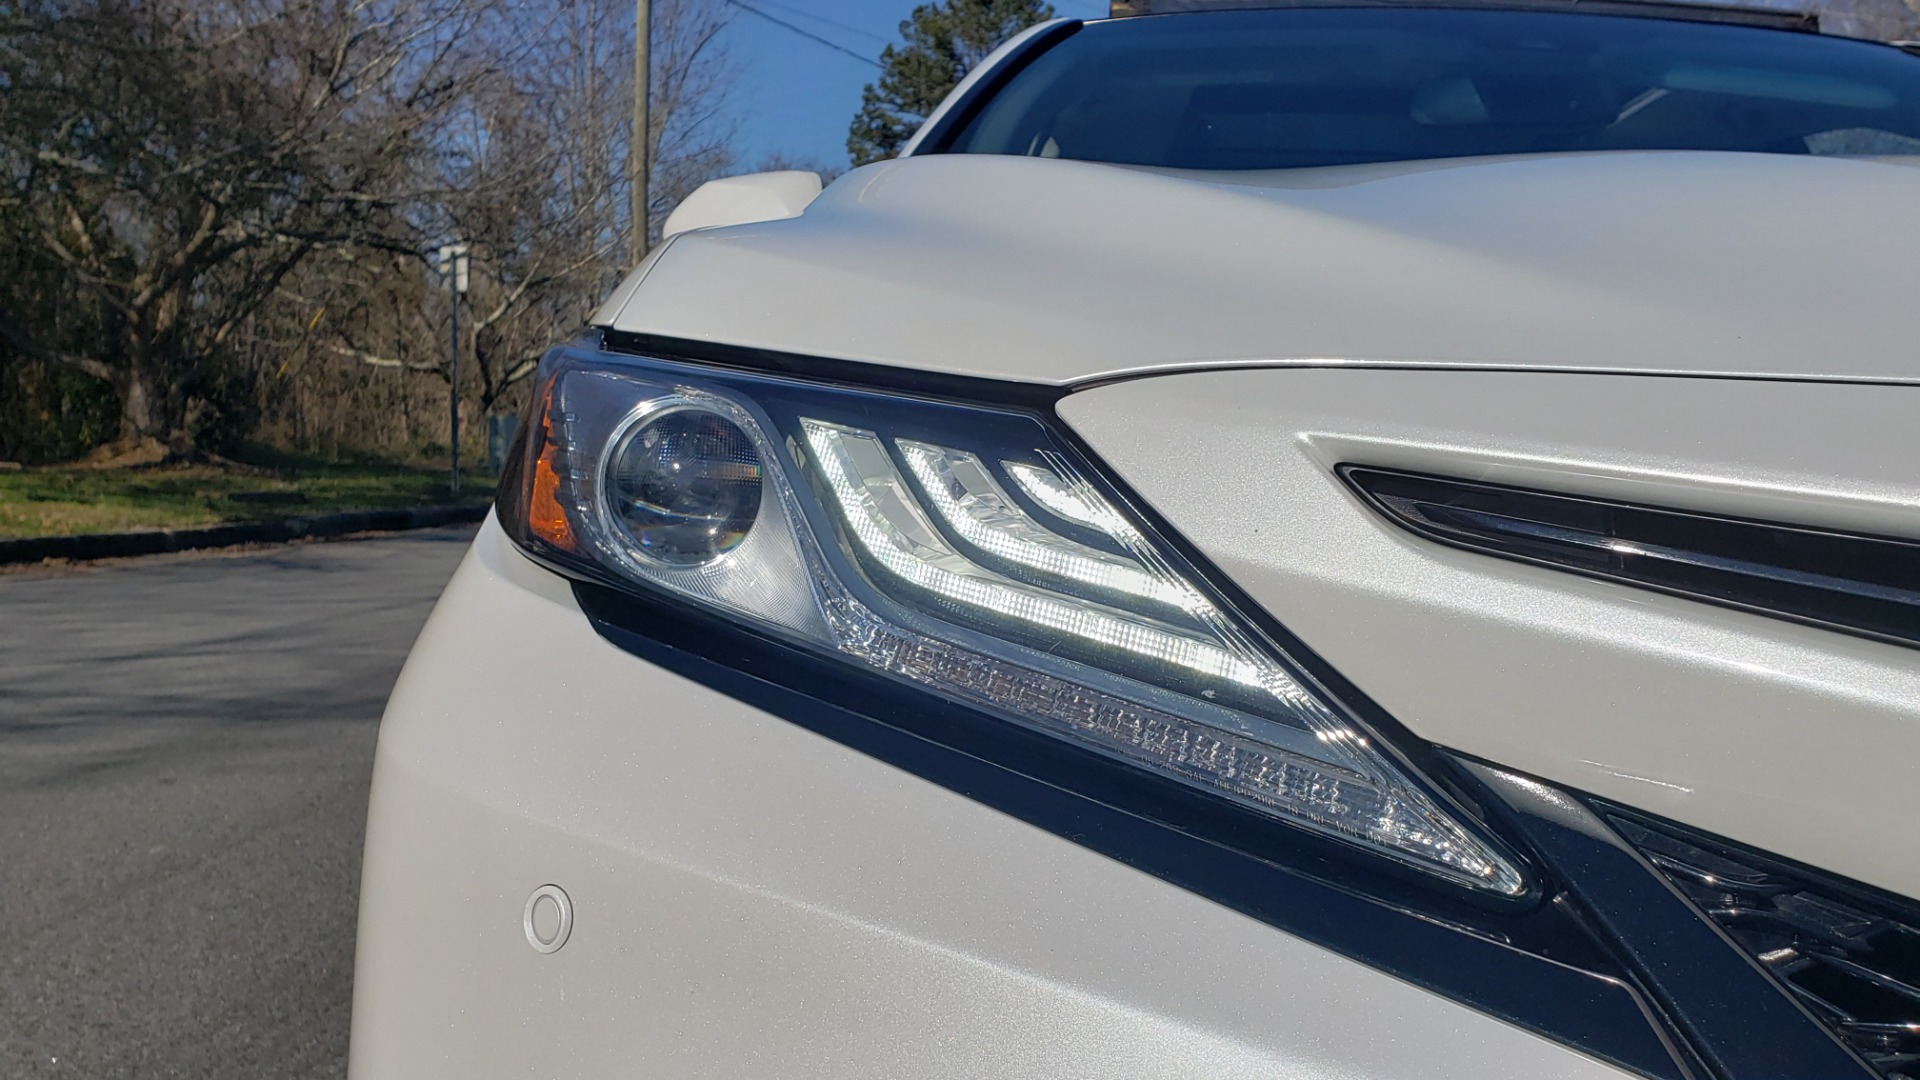 Used 2018 Toyota CAMRY XSE 2.5L SEDAN / 8-SPD AUTO / PANO-ROOF / 19IN WHEELS for sale Sold at Formula Imports in Charlotte NC 28227 19